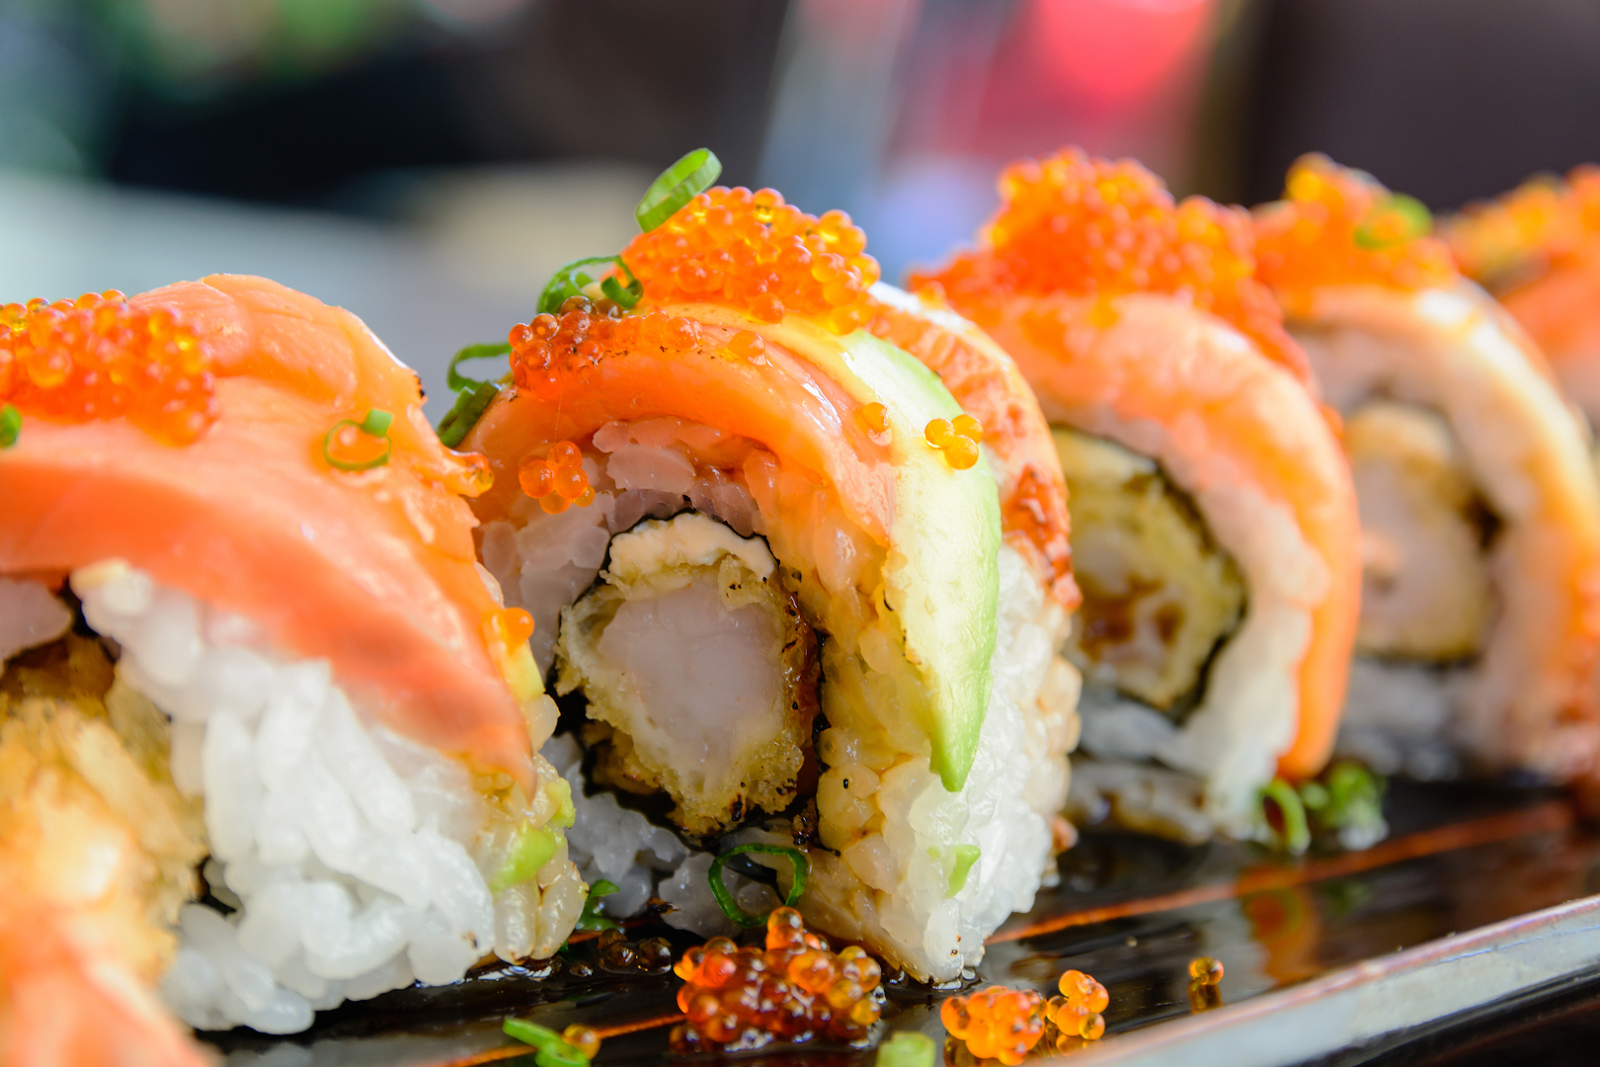 Sushi roll with salmon, avocado, and roe